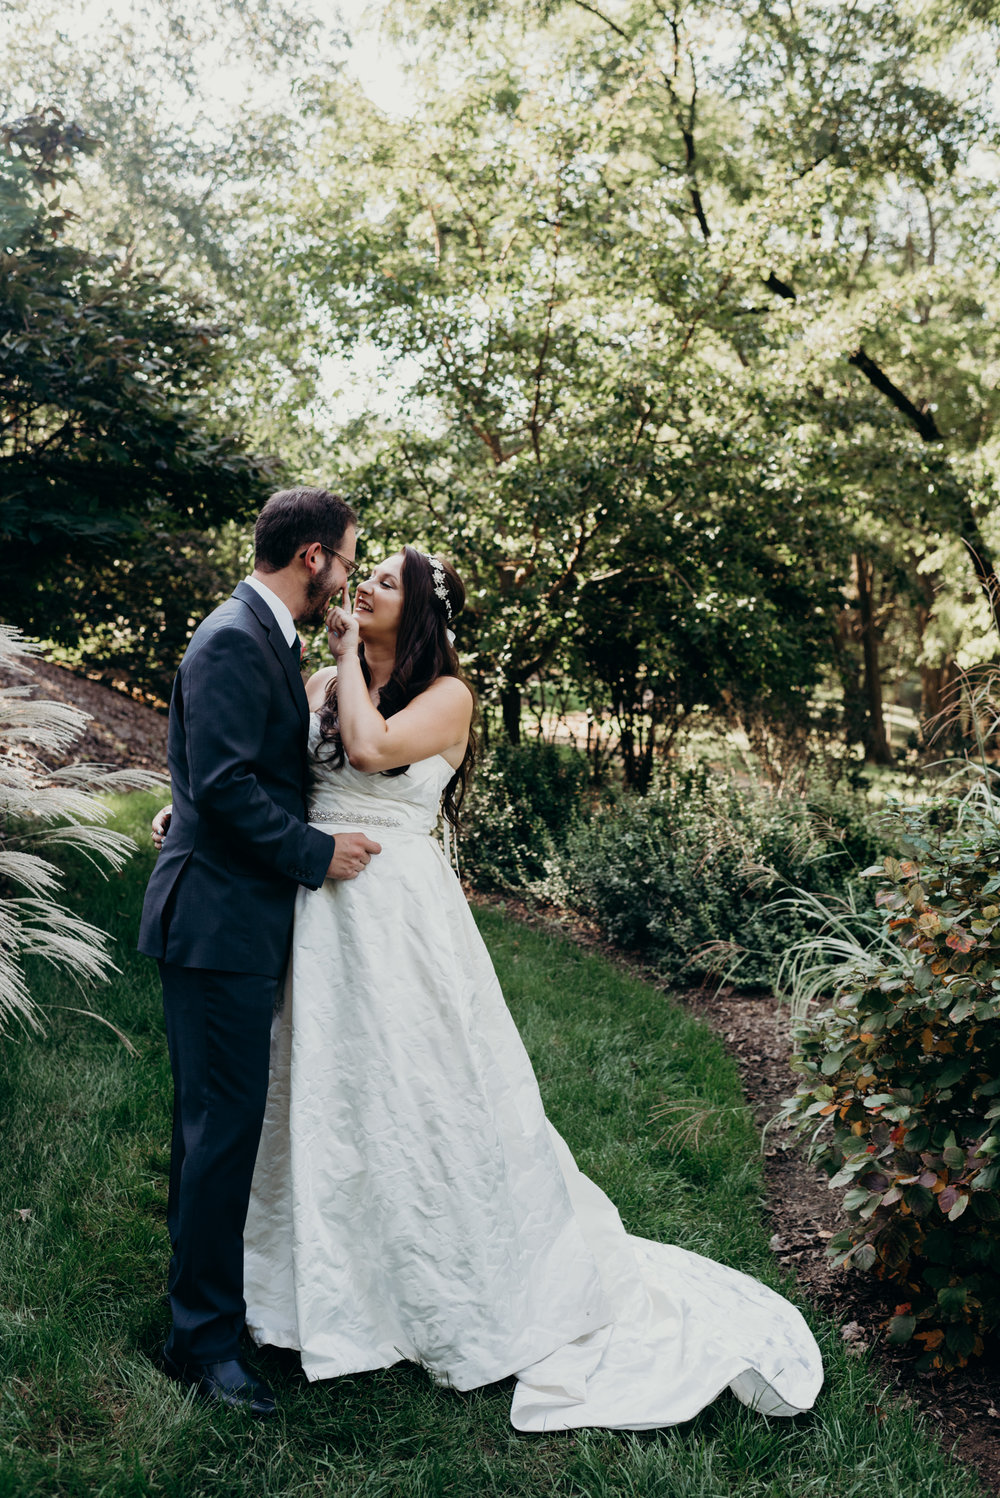 dc-intimate-wedding-photographer-megan-graham-photography